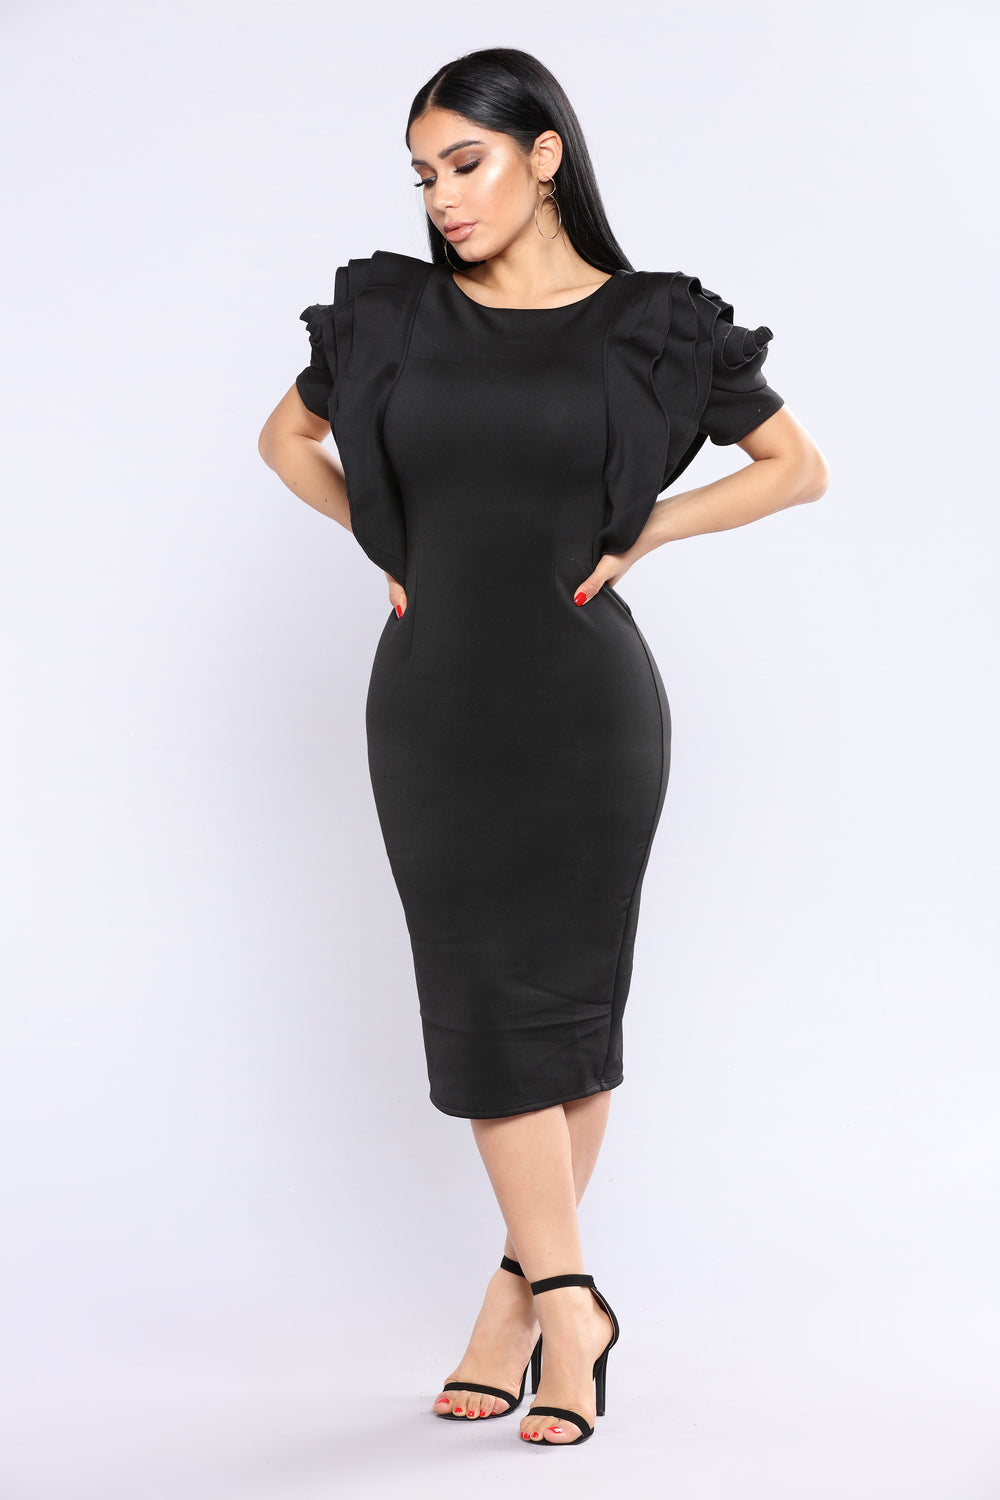 Emmy Night Rose Sleeve Dress - Black